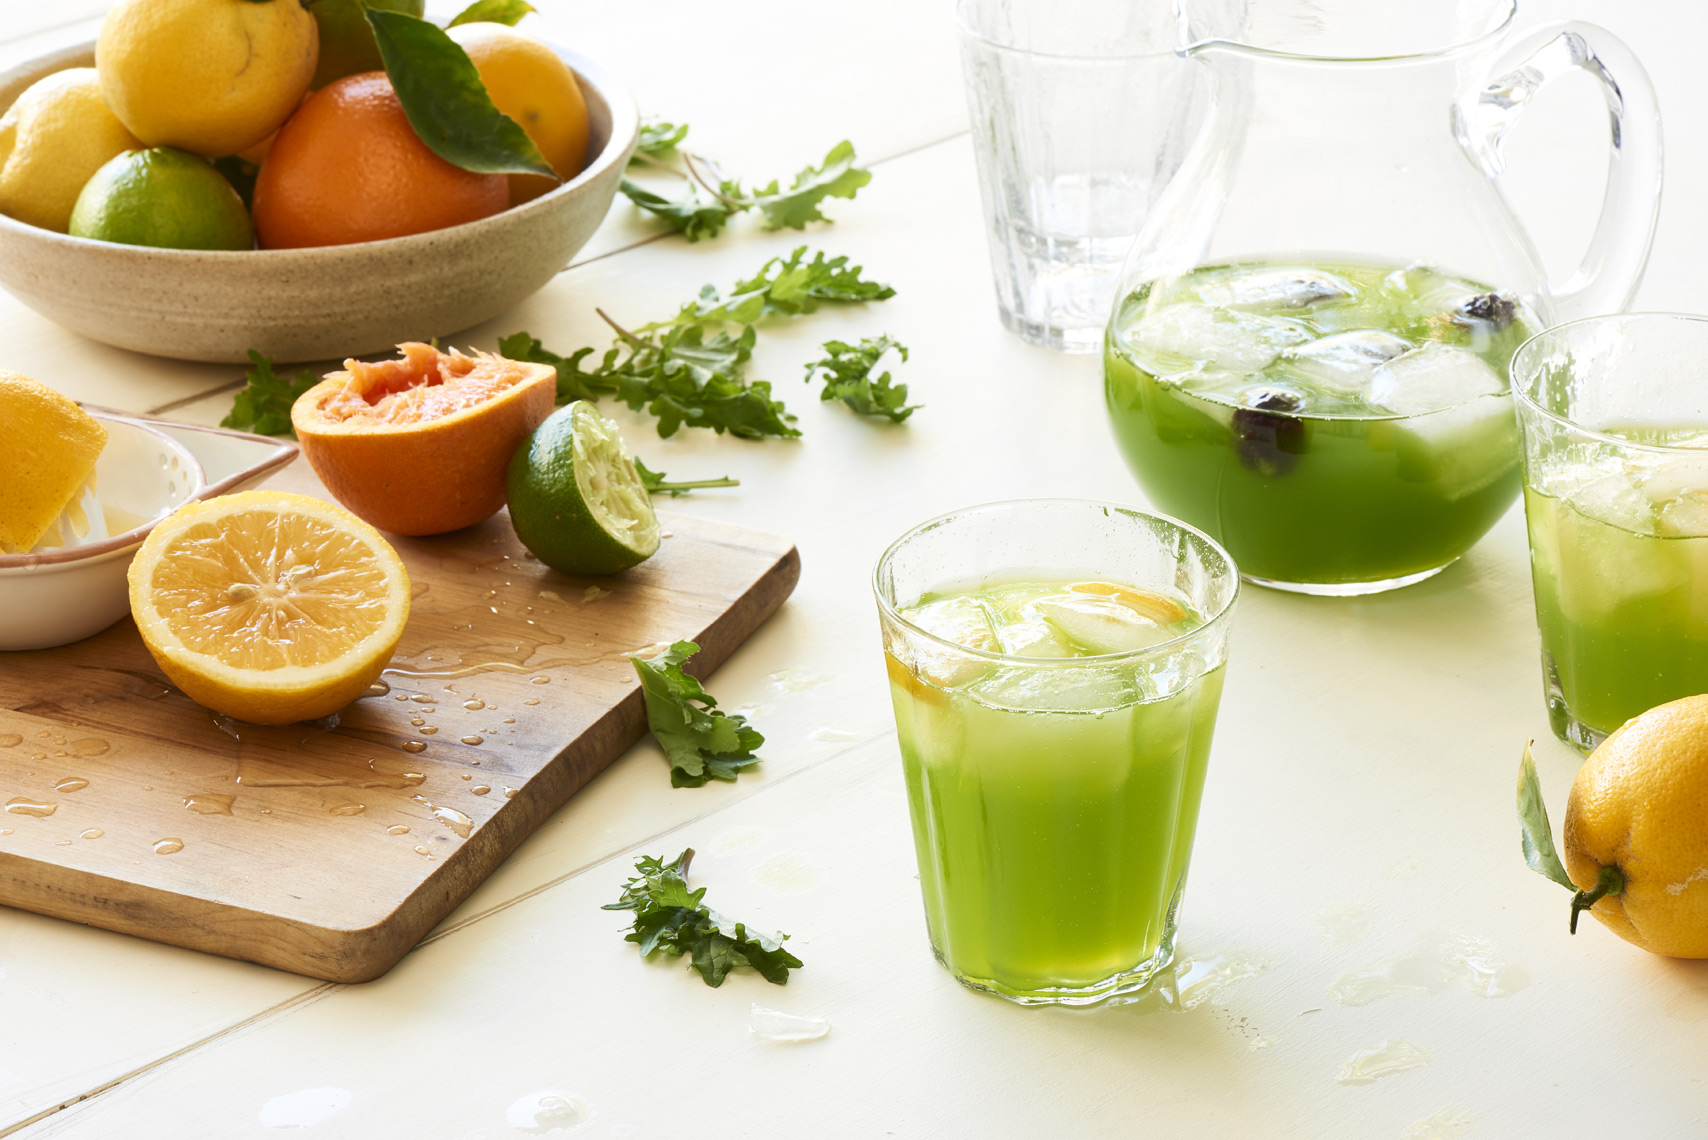 Kale-Lemonade-with-Citrus